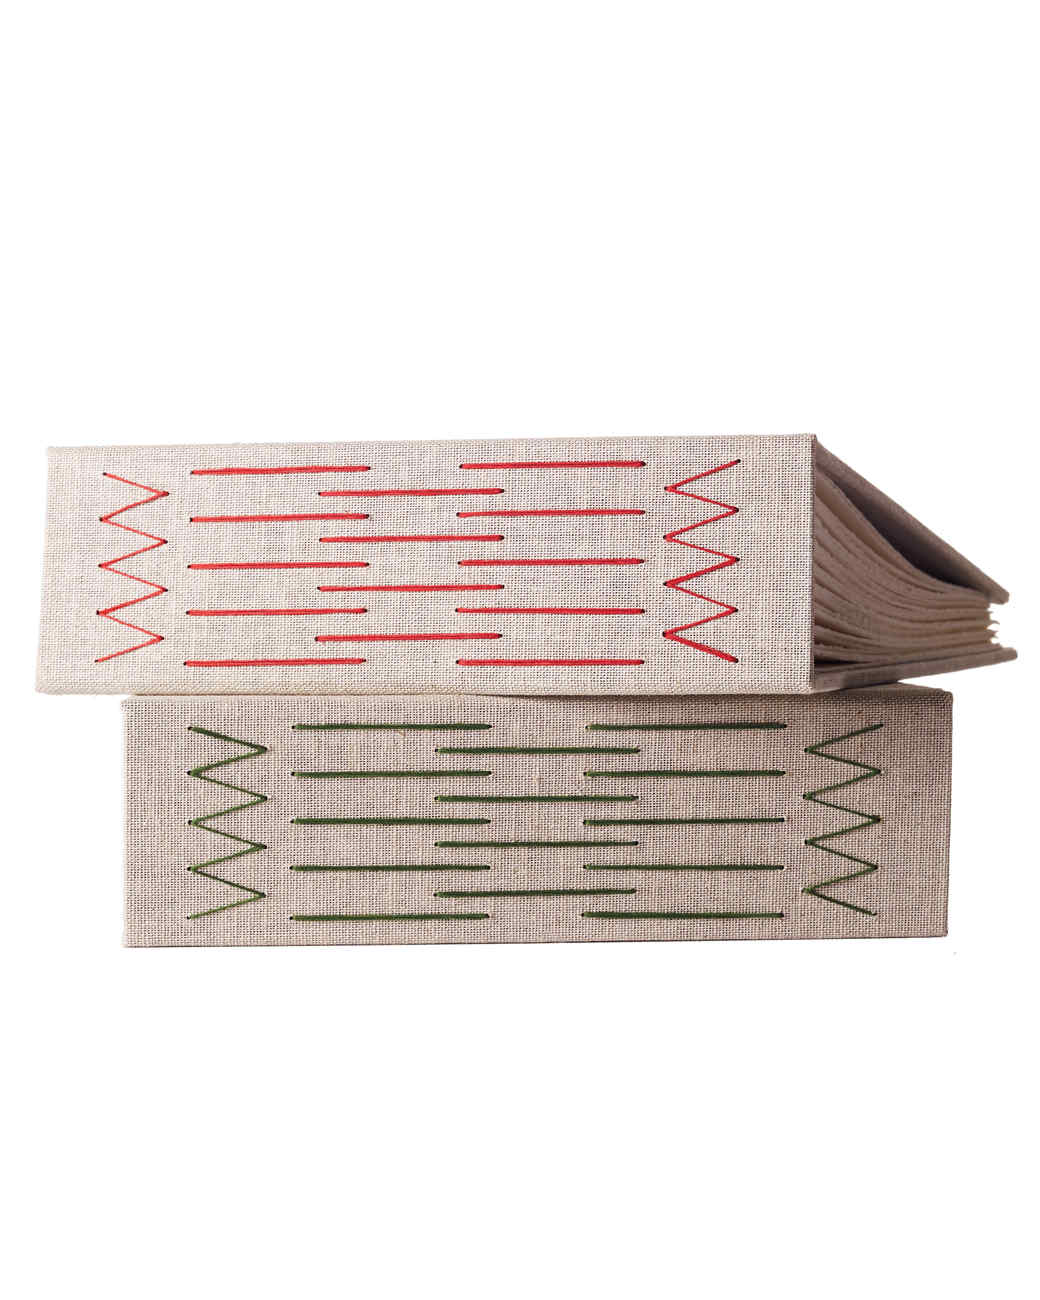 stitched-notebooks-001-d111535.jpg